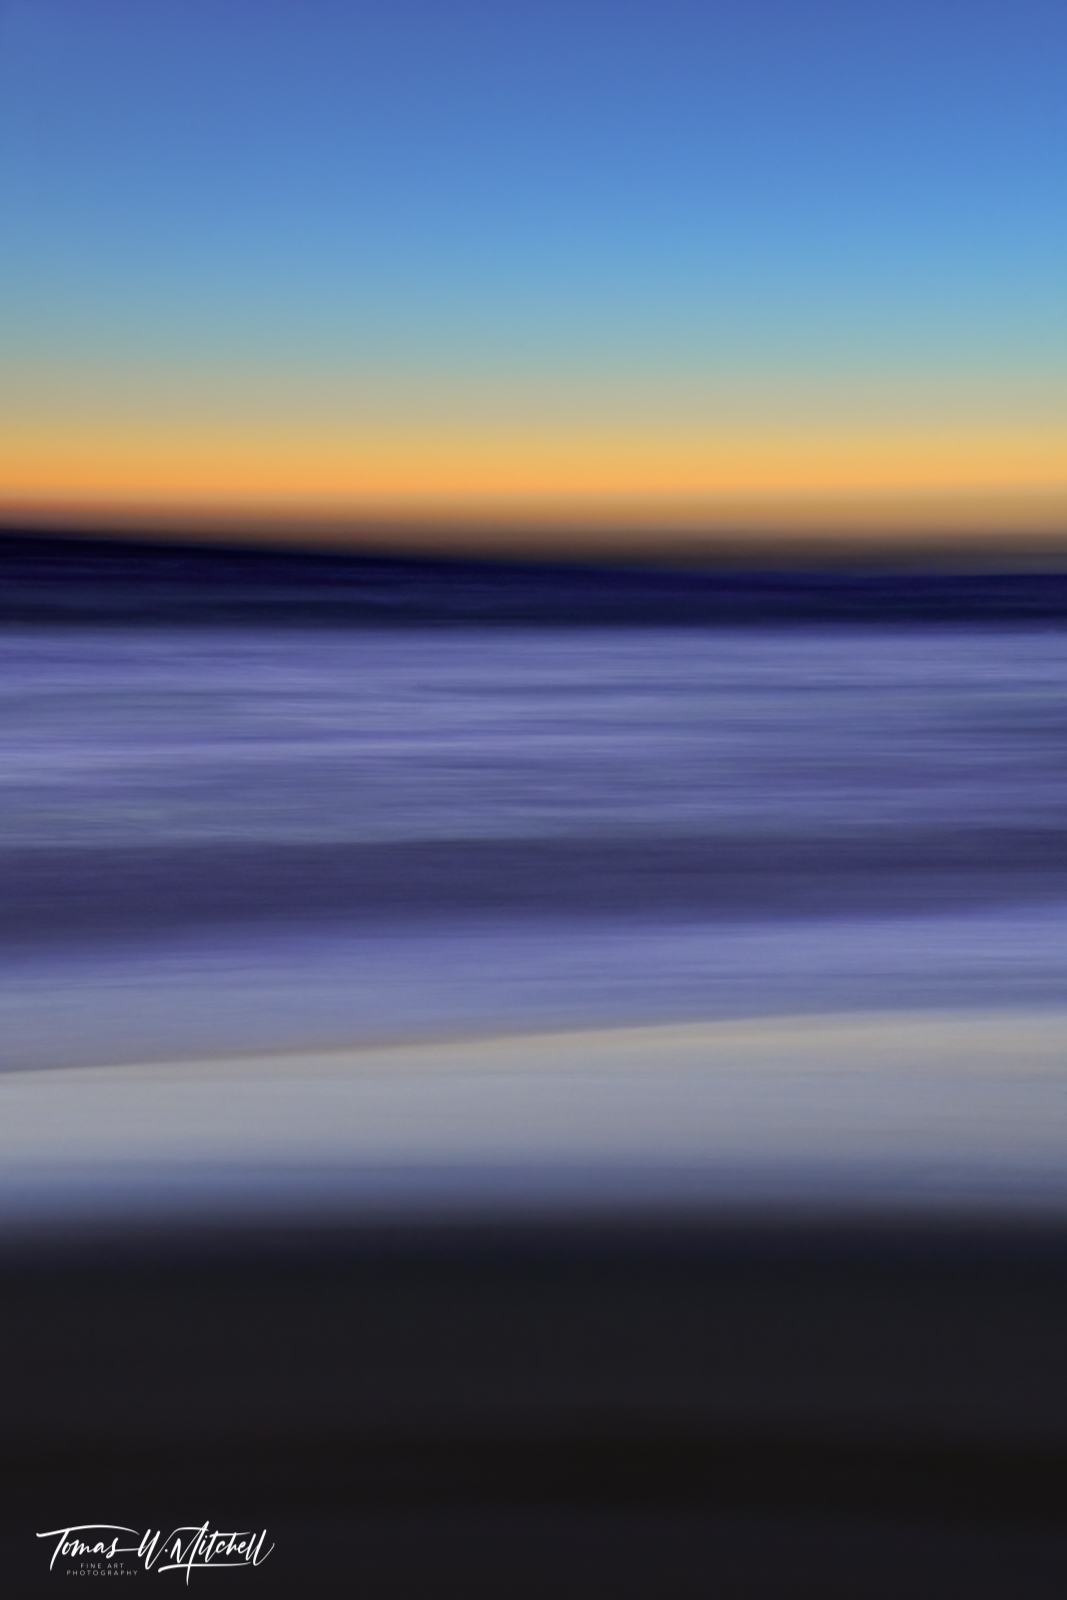 limited edition, fine art, prints, moody blues, photograph, pacific grove, california, sunset, abstract, ICM, photography, yellow, blue, ocean, photo